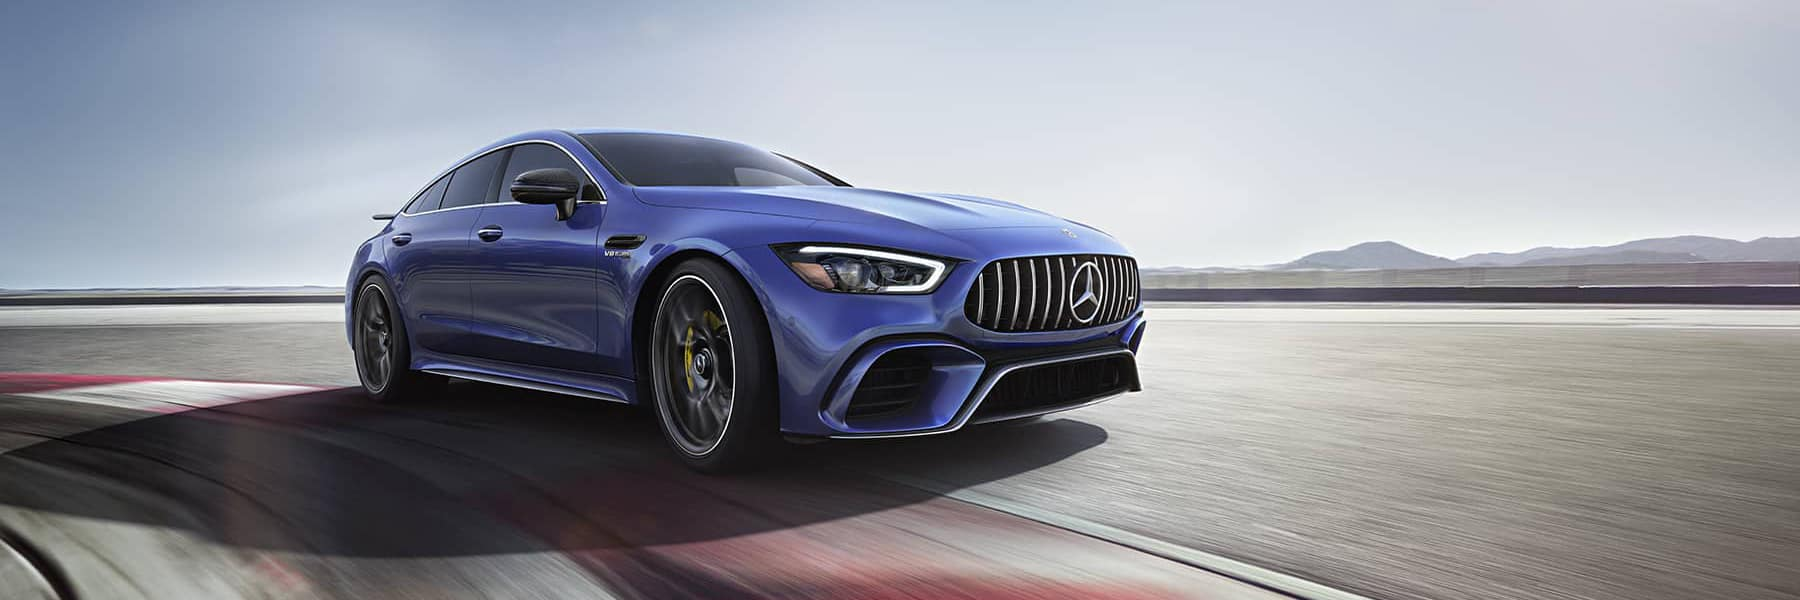 2019 MB AMG GT63S Coupe On Track